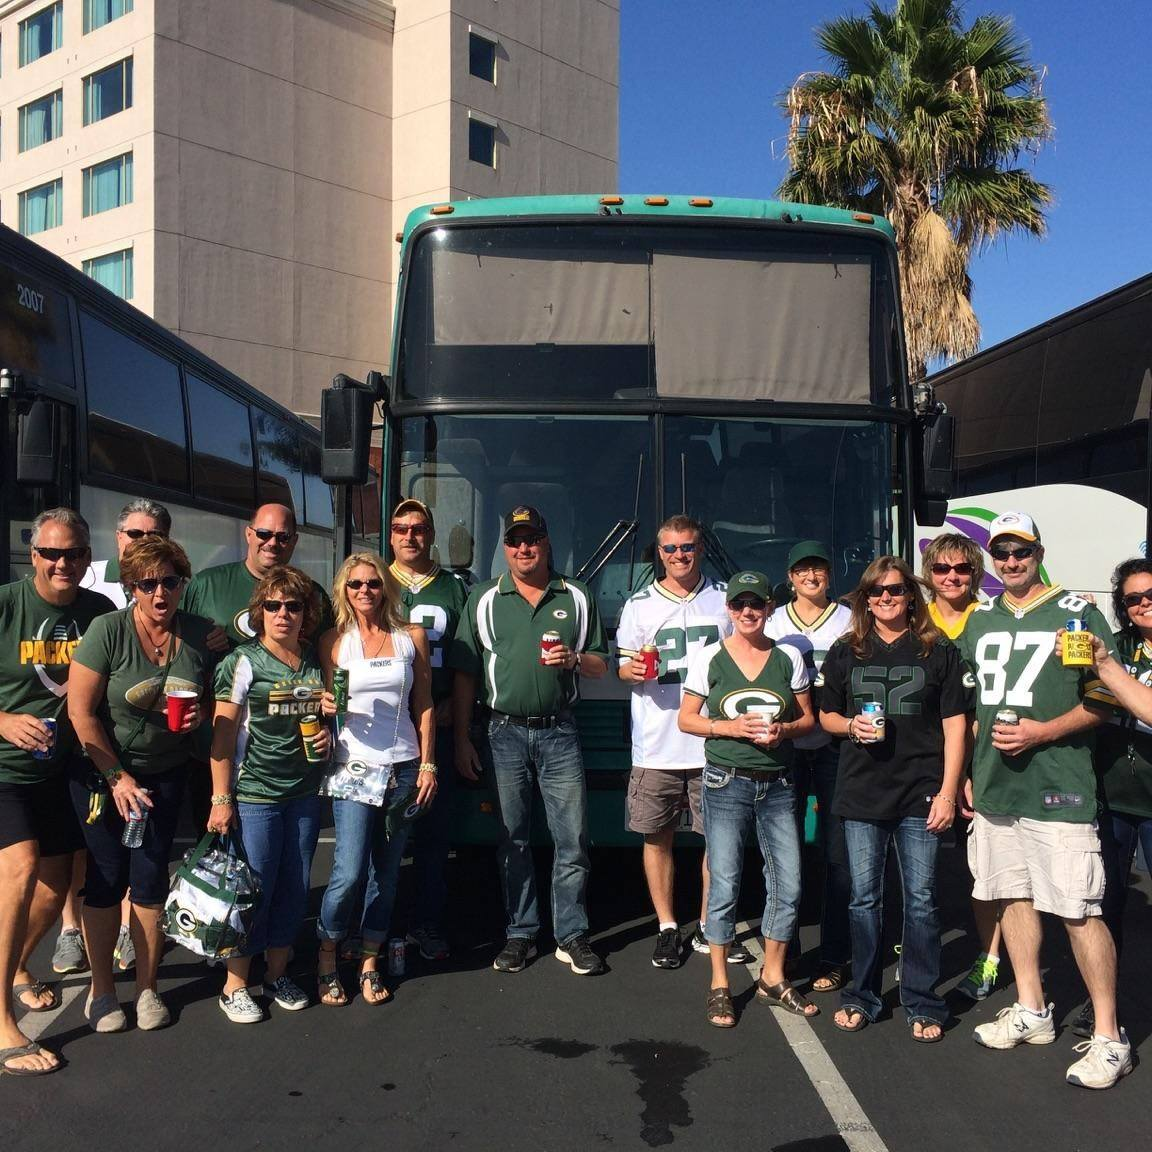 Green Bay Packers fans in front of their Rally bus in San Francisco, CA.